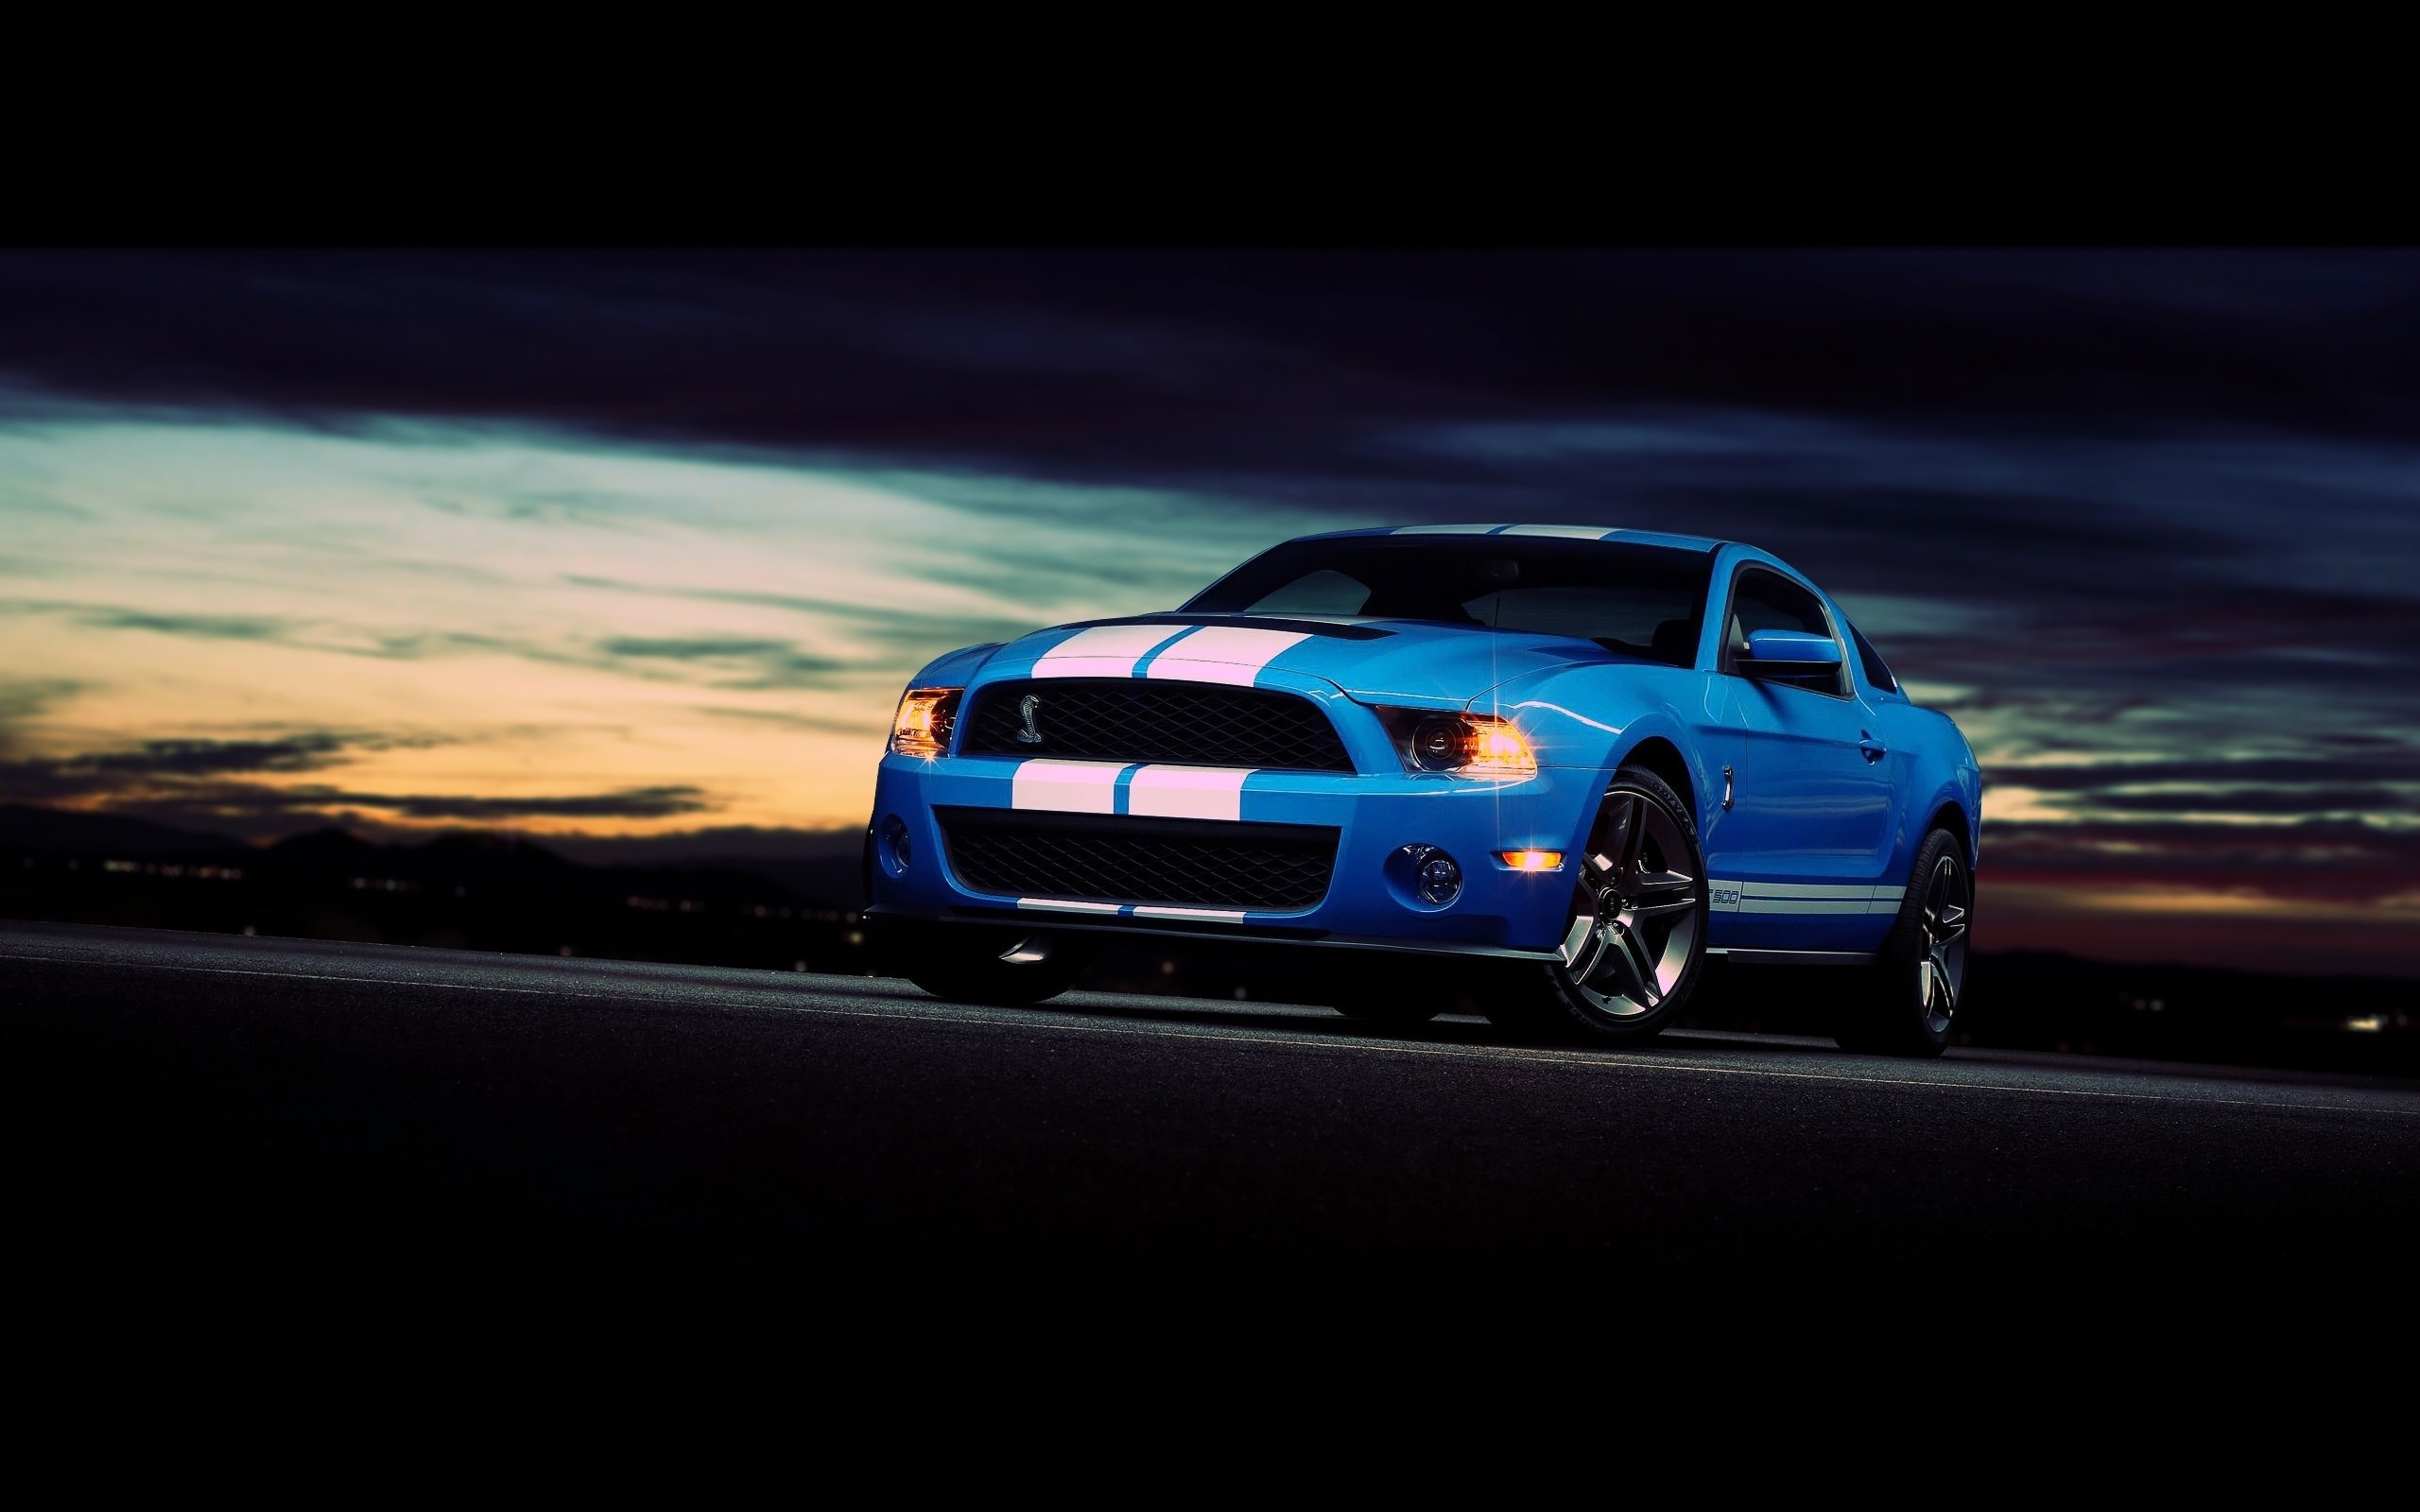 2560x1600 HD Wallpaper | Background ID:396443.  Vehicles Ford Mustang Shelby  GT500